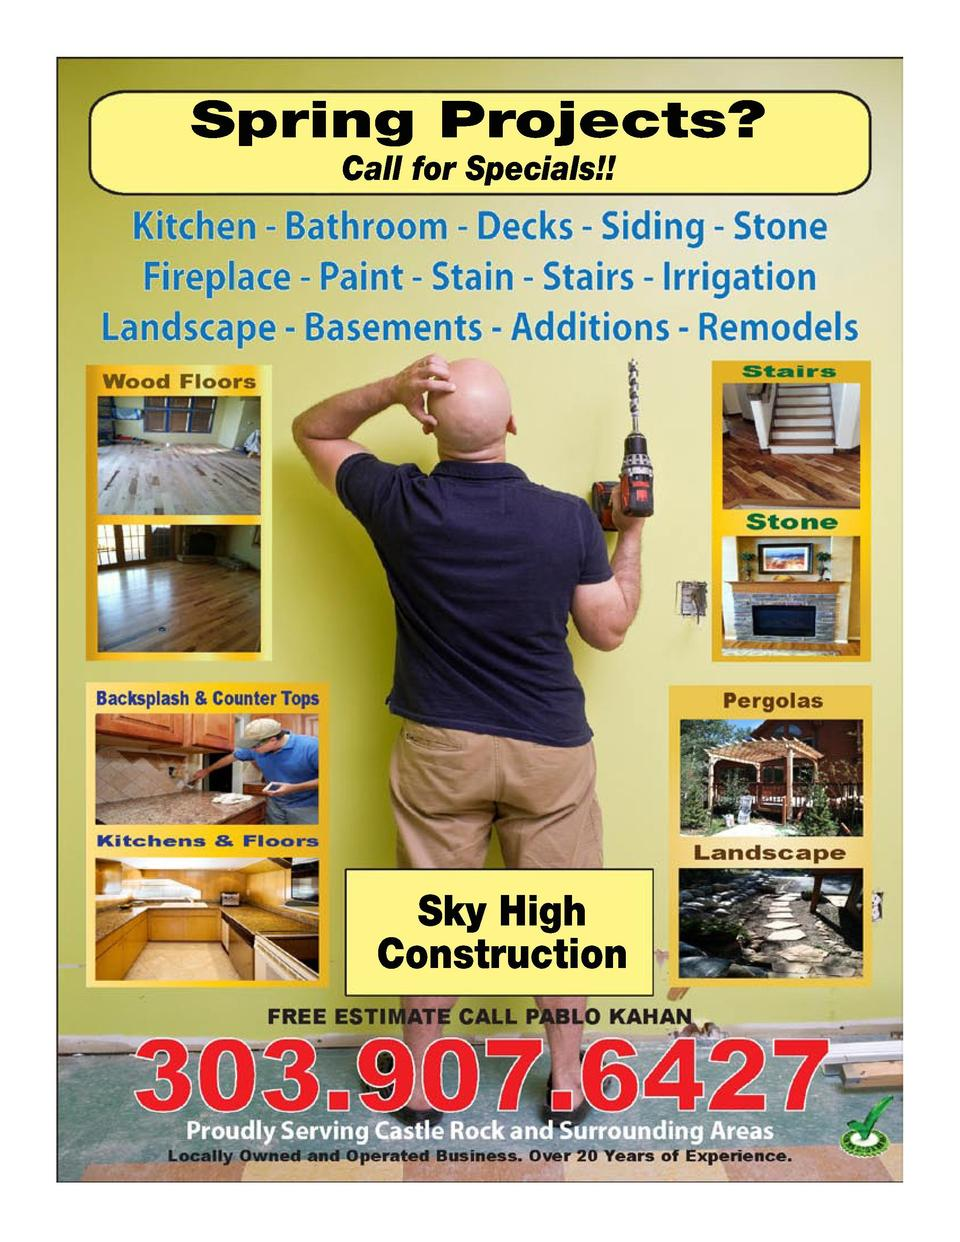 Spring Projects  Call for Specials    Sky High Construction  16  17